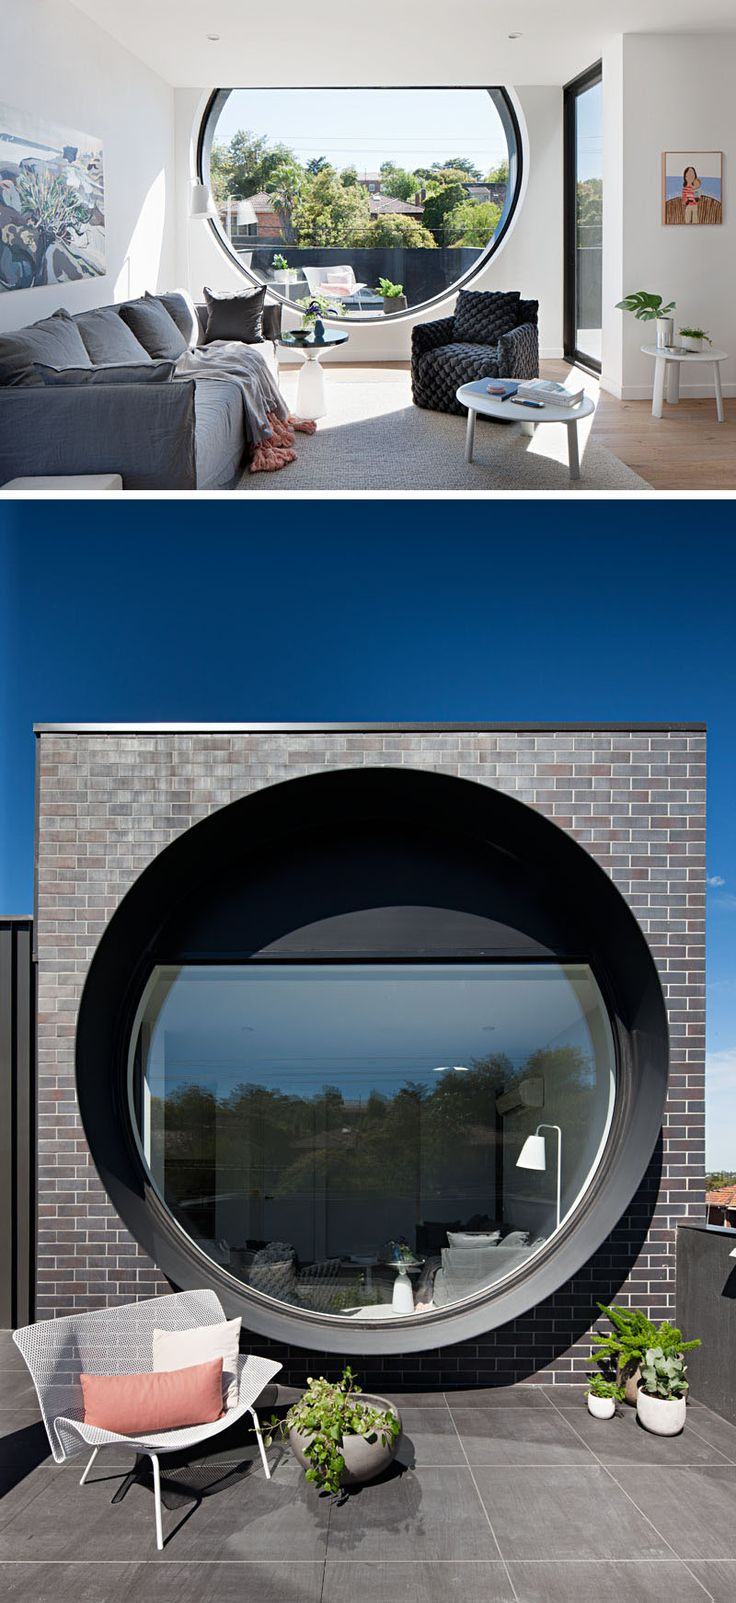 In this modern apartment, the living room is situated next to the large porthole window that provides rooftop views of the surrounding area. Just off the living room is a door that provides access to a small balcony. #Windows #LivingRoom #RoundWindow #Porthole #Architecture #InteriorDesign